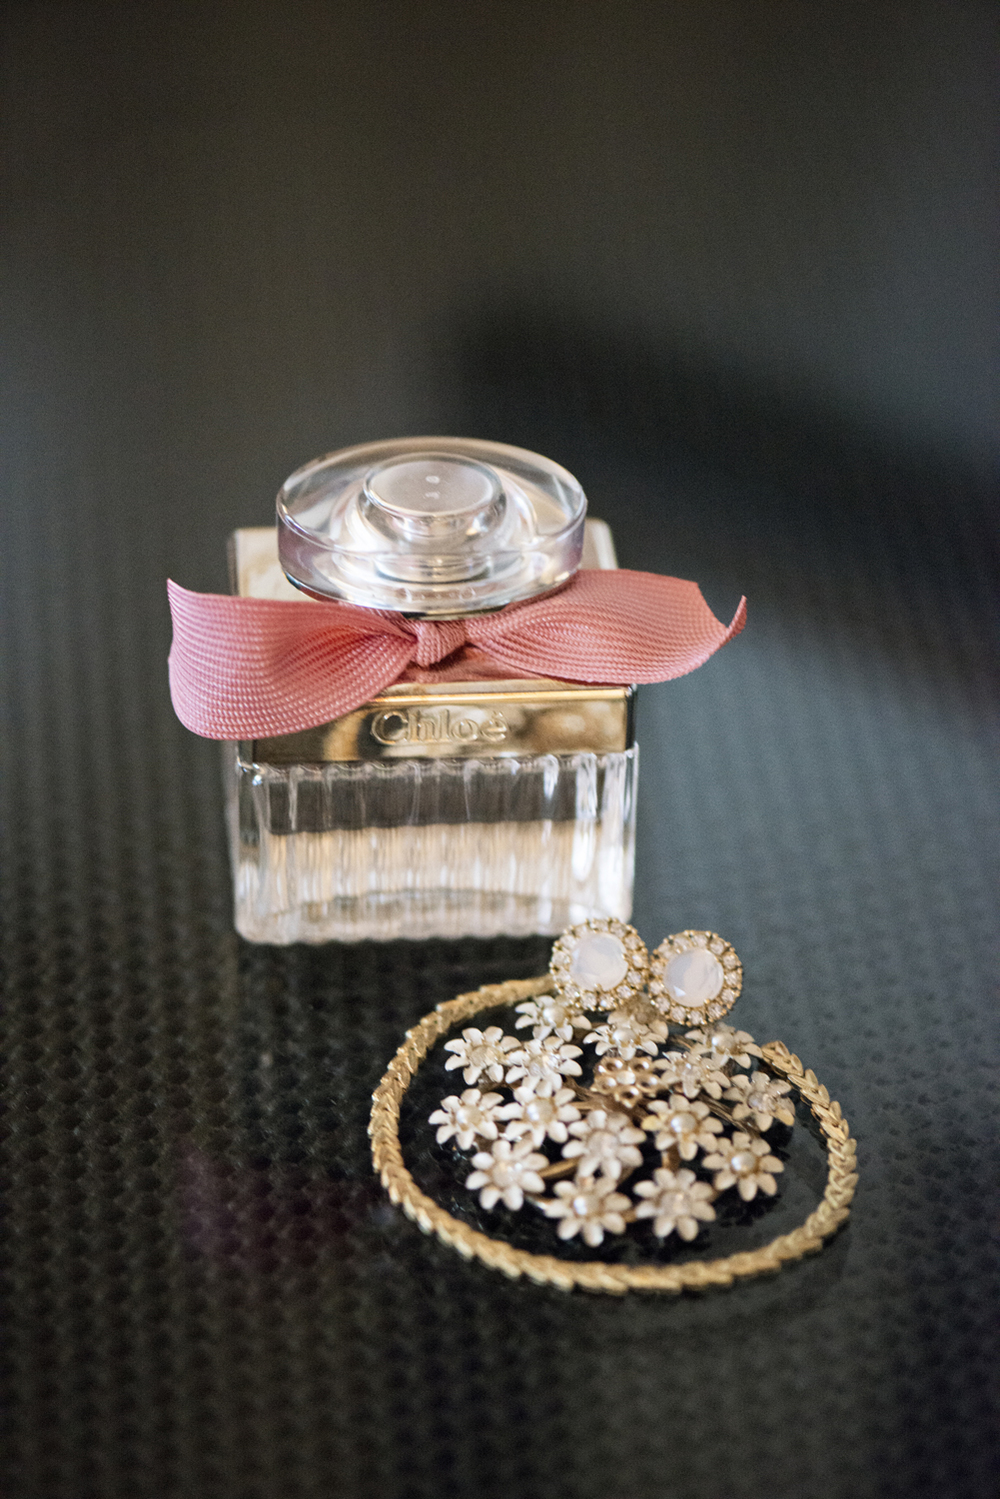 Chloe wedding perfume with pink bow and flower jewelry